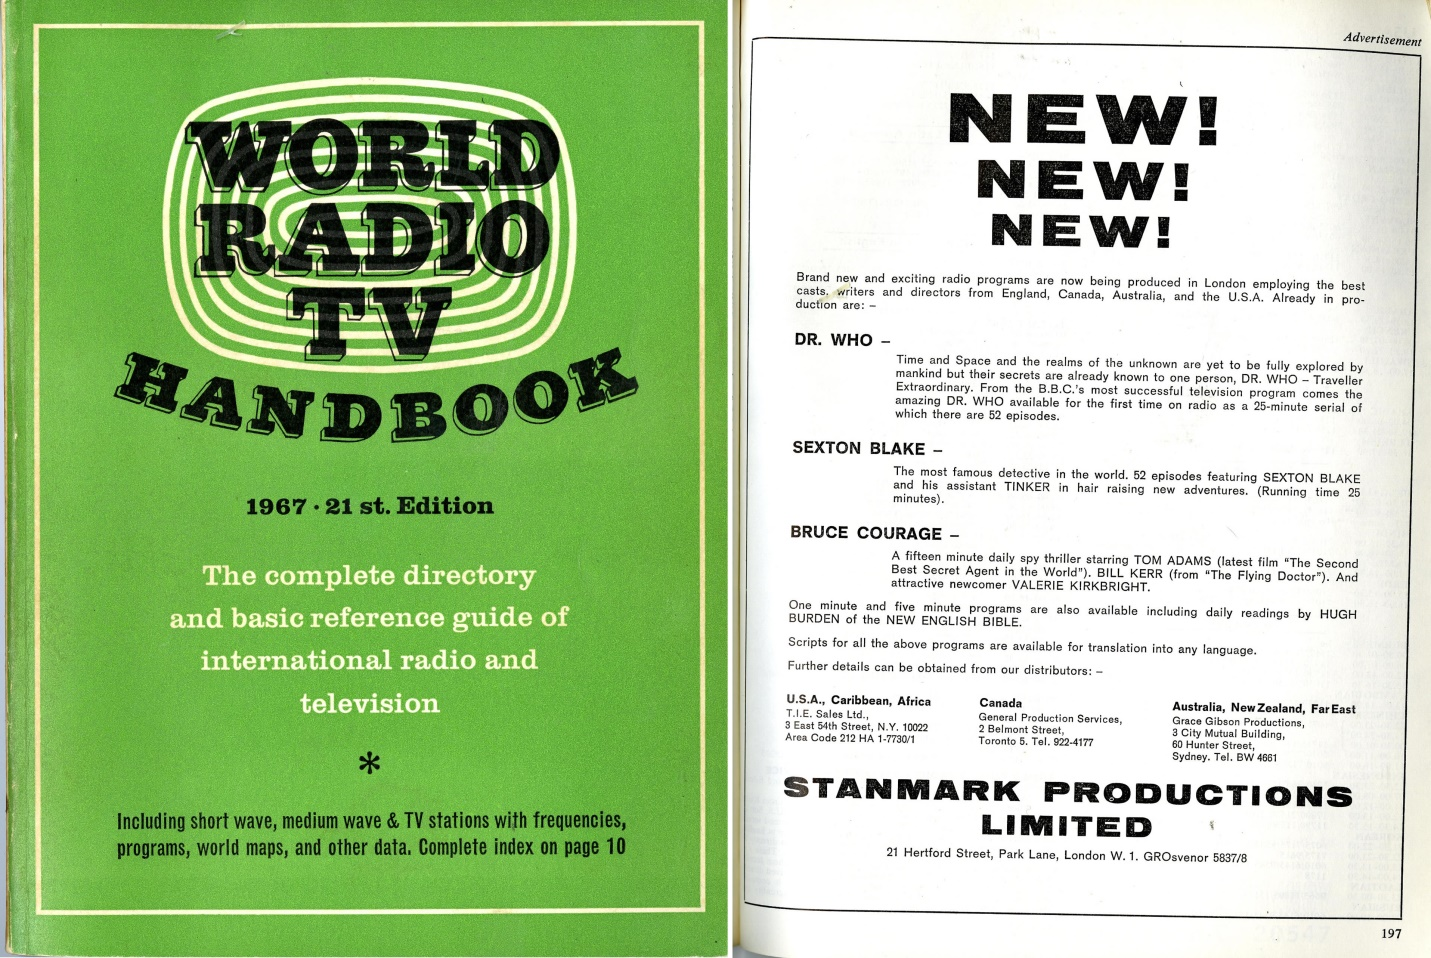 Stanmark Productions Ltd. ad. for a proposed series of Dr. Who radio plays, in World Radio TV Handbook 1967